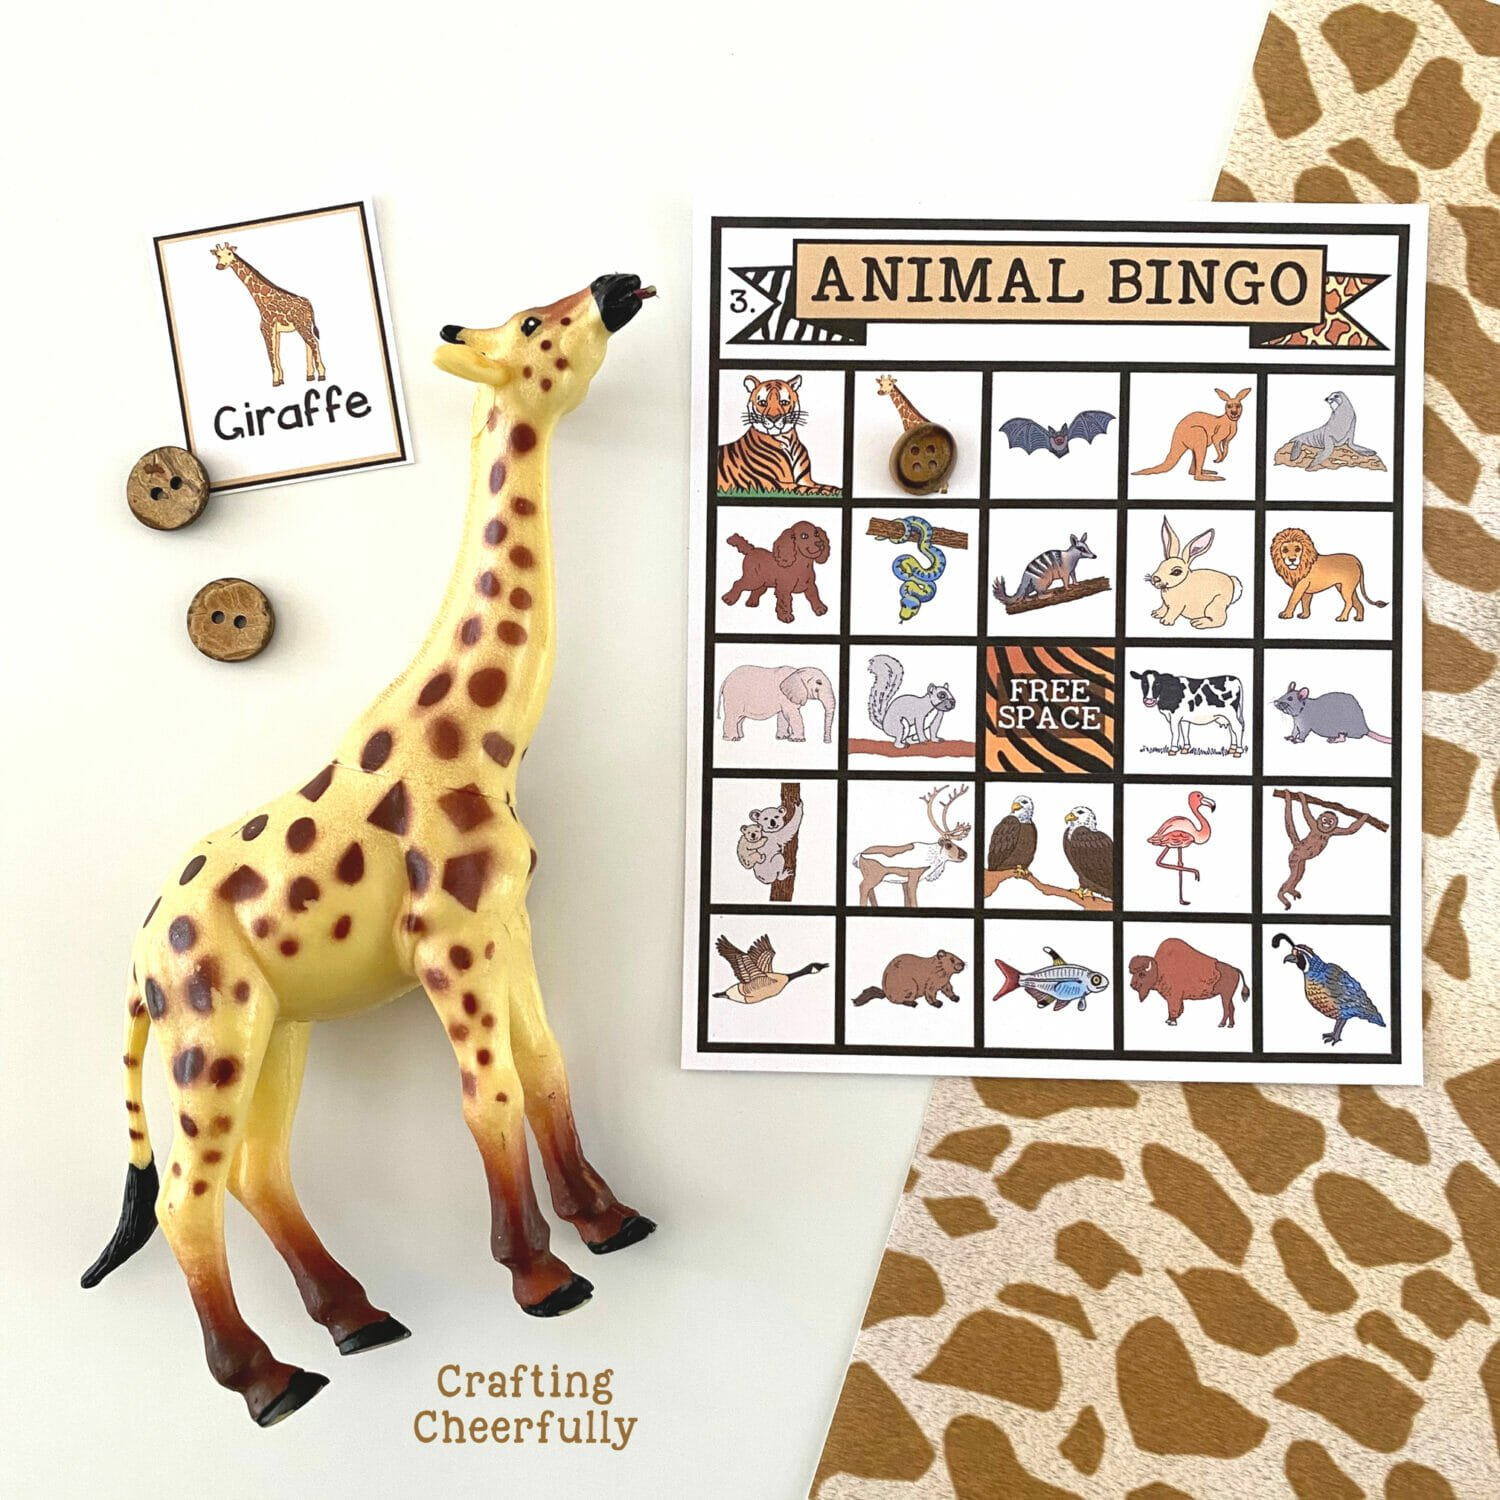 An animal BINGO board on a white and giraffe print surface with calling cards and toy giraffe laying around it